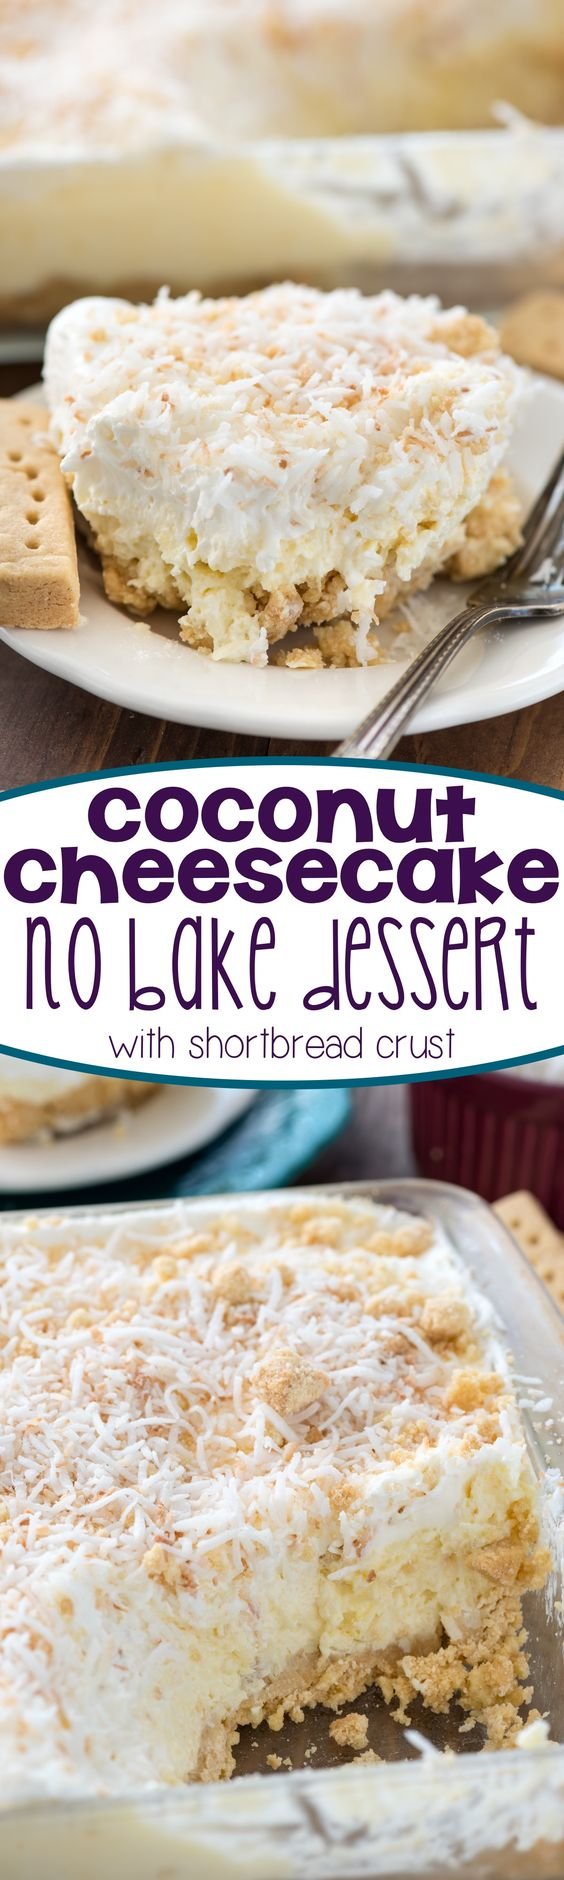 ... coconut cheesecake and a shortbread crust! It's a great no bake recipe